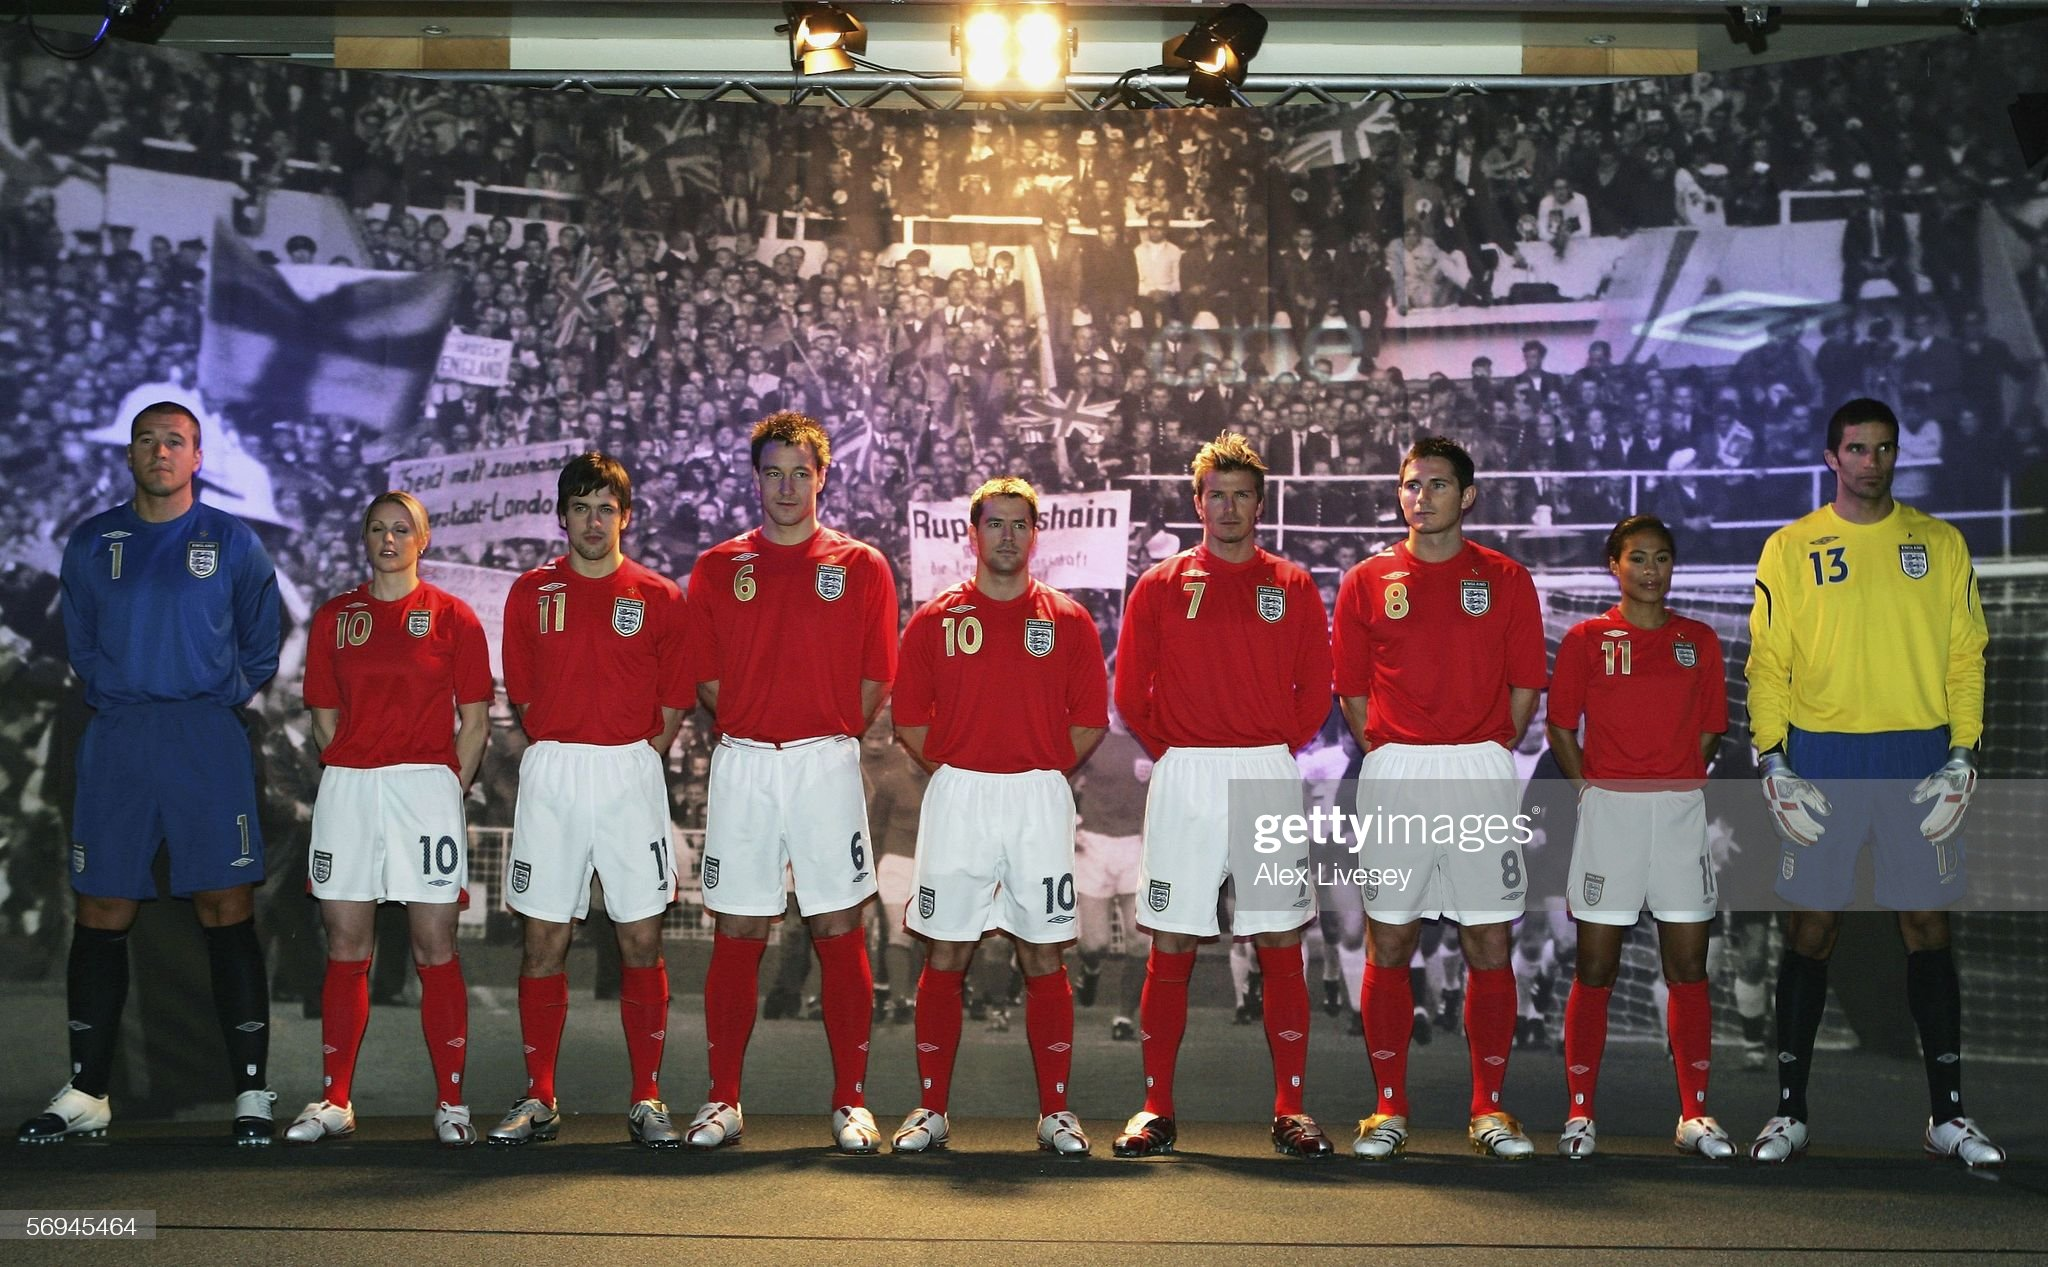 ¿Cuánto mide Joe Cole? - Real height Paul-robinson-kelly-smith-joe-cole-john-terry-michael-owen-david-picture-id56945464?s=2048x2048